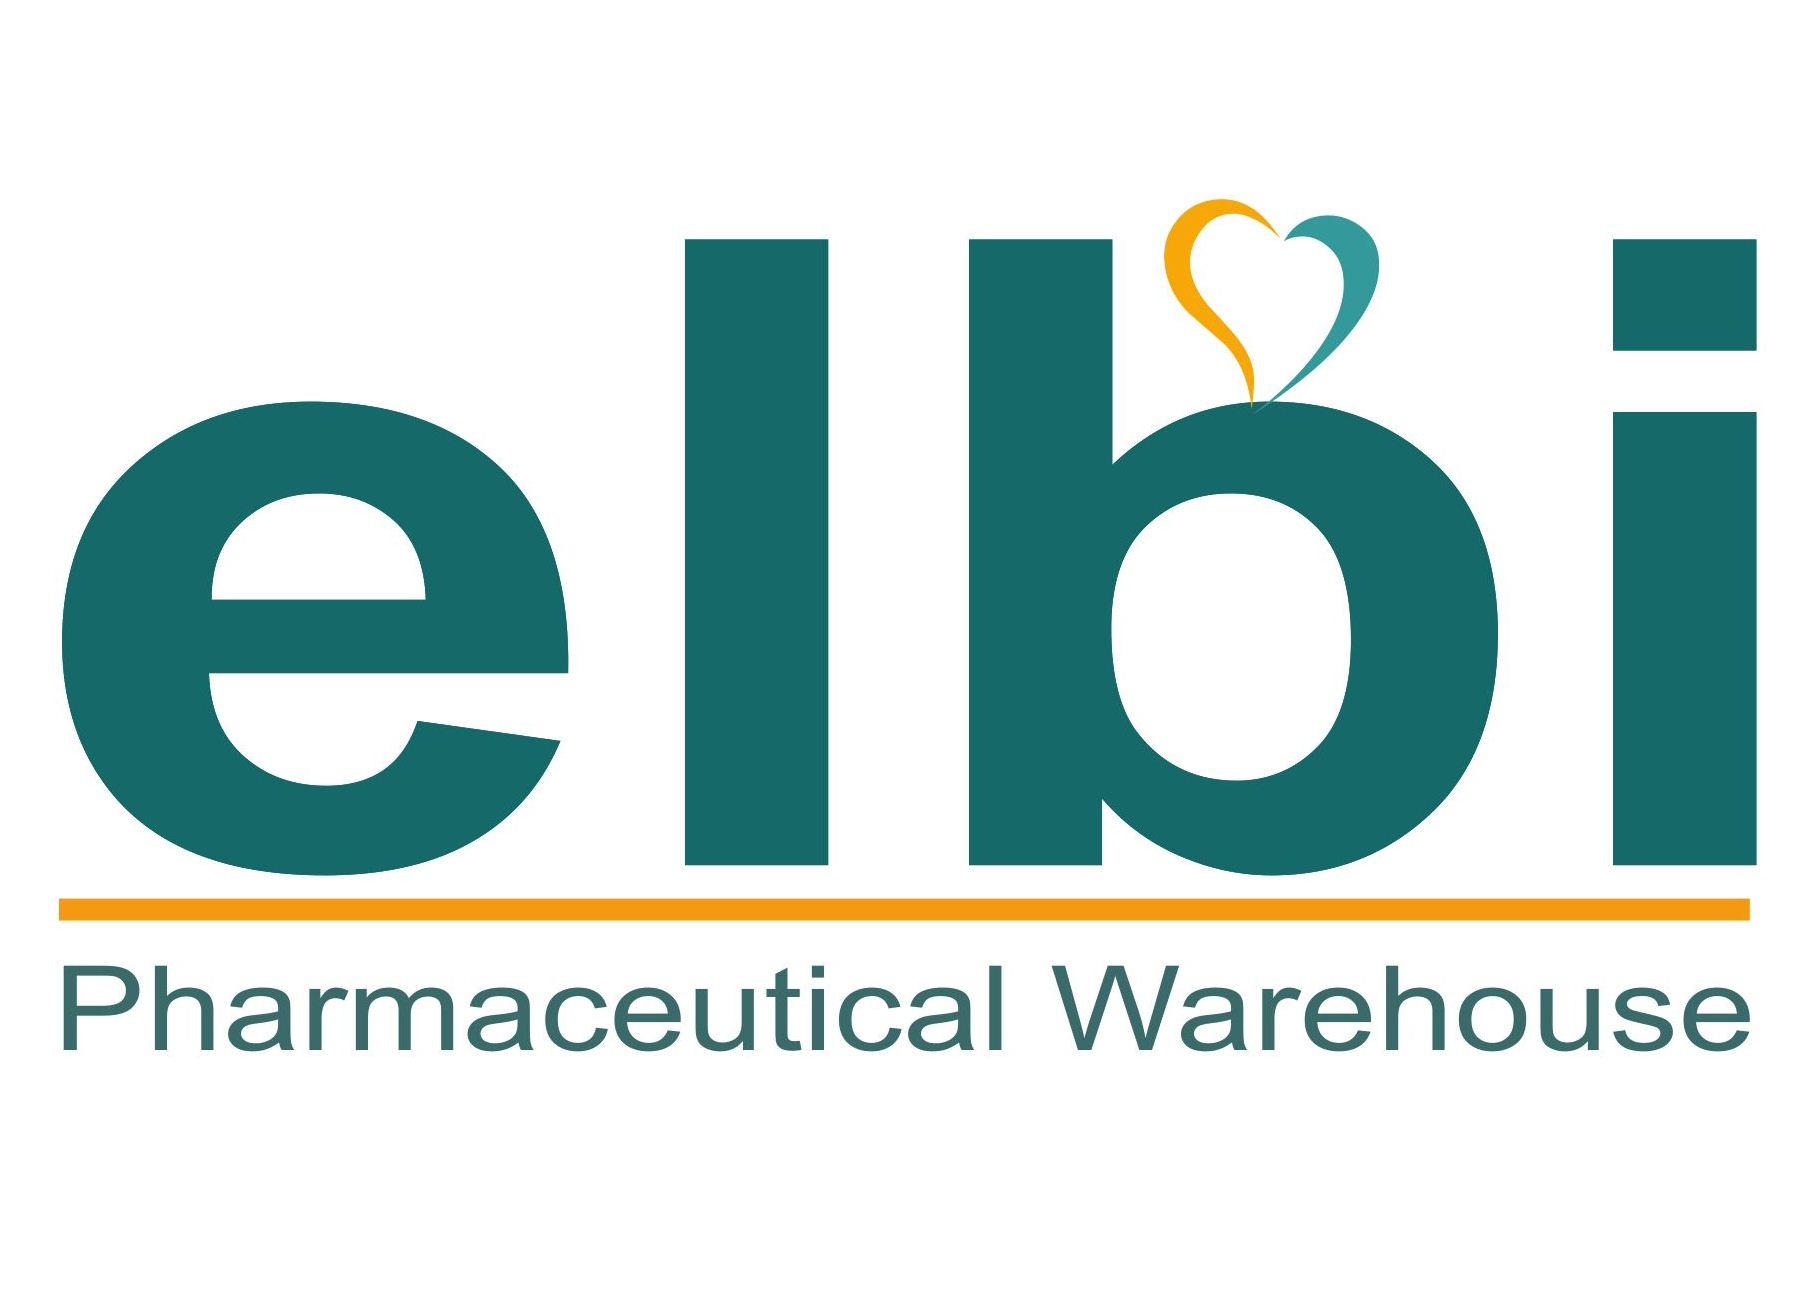 ELBI PHARMACEUTICALS WHOLESALE WAREHOUSE, ELBI PHARMA (ELBI PHARMACEUTICALS WHOLESALE WAREHOUSE)